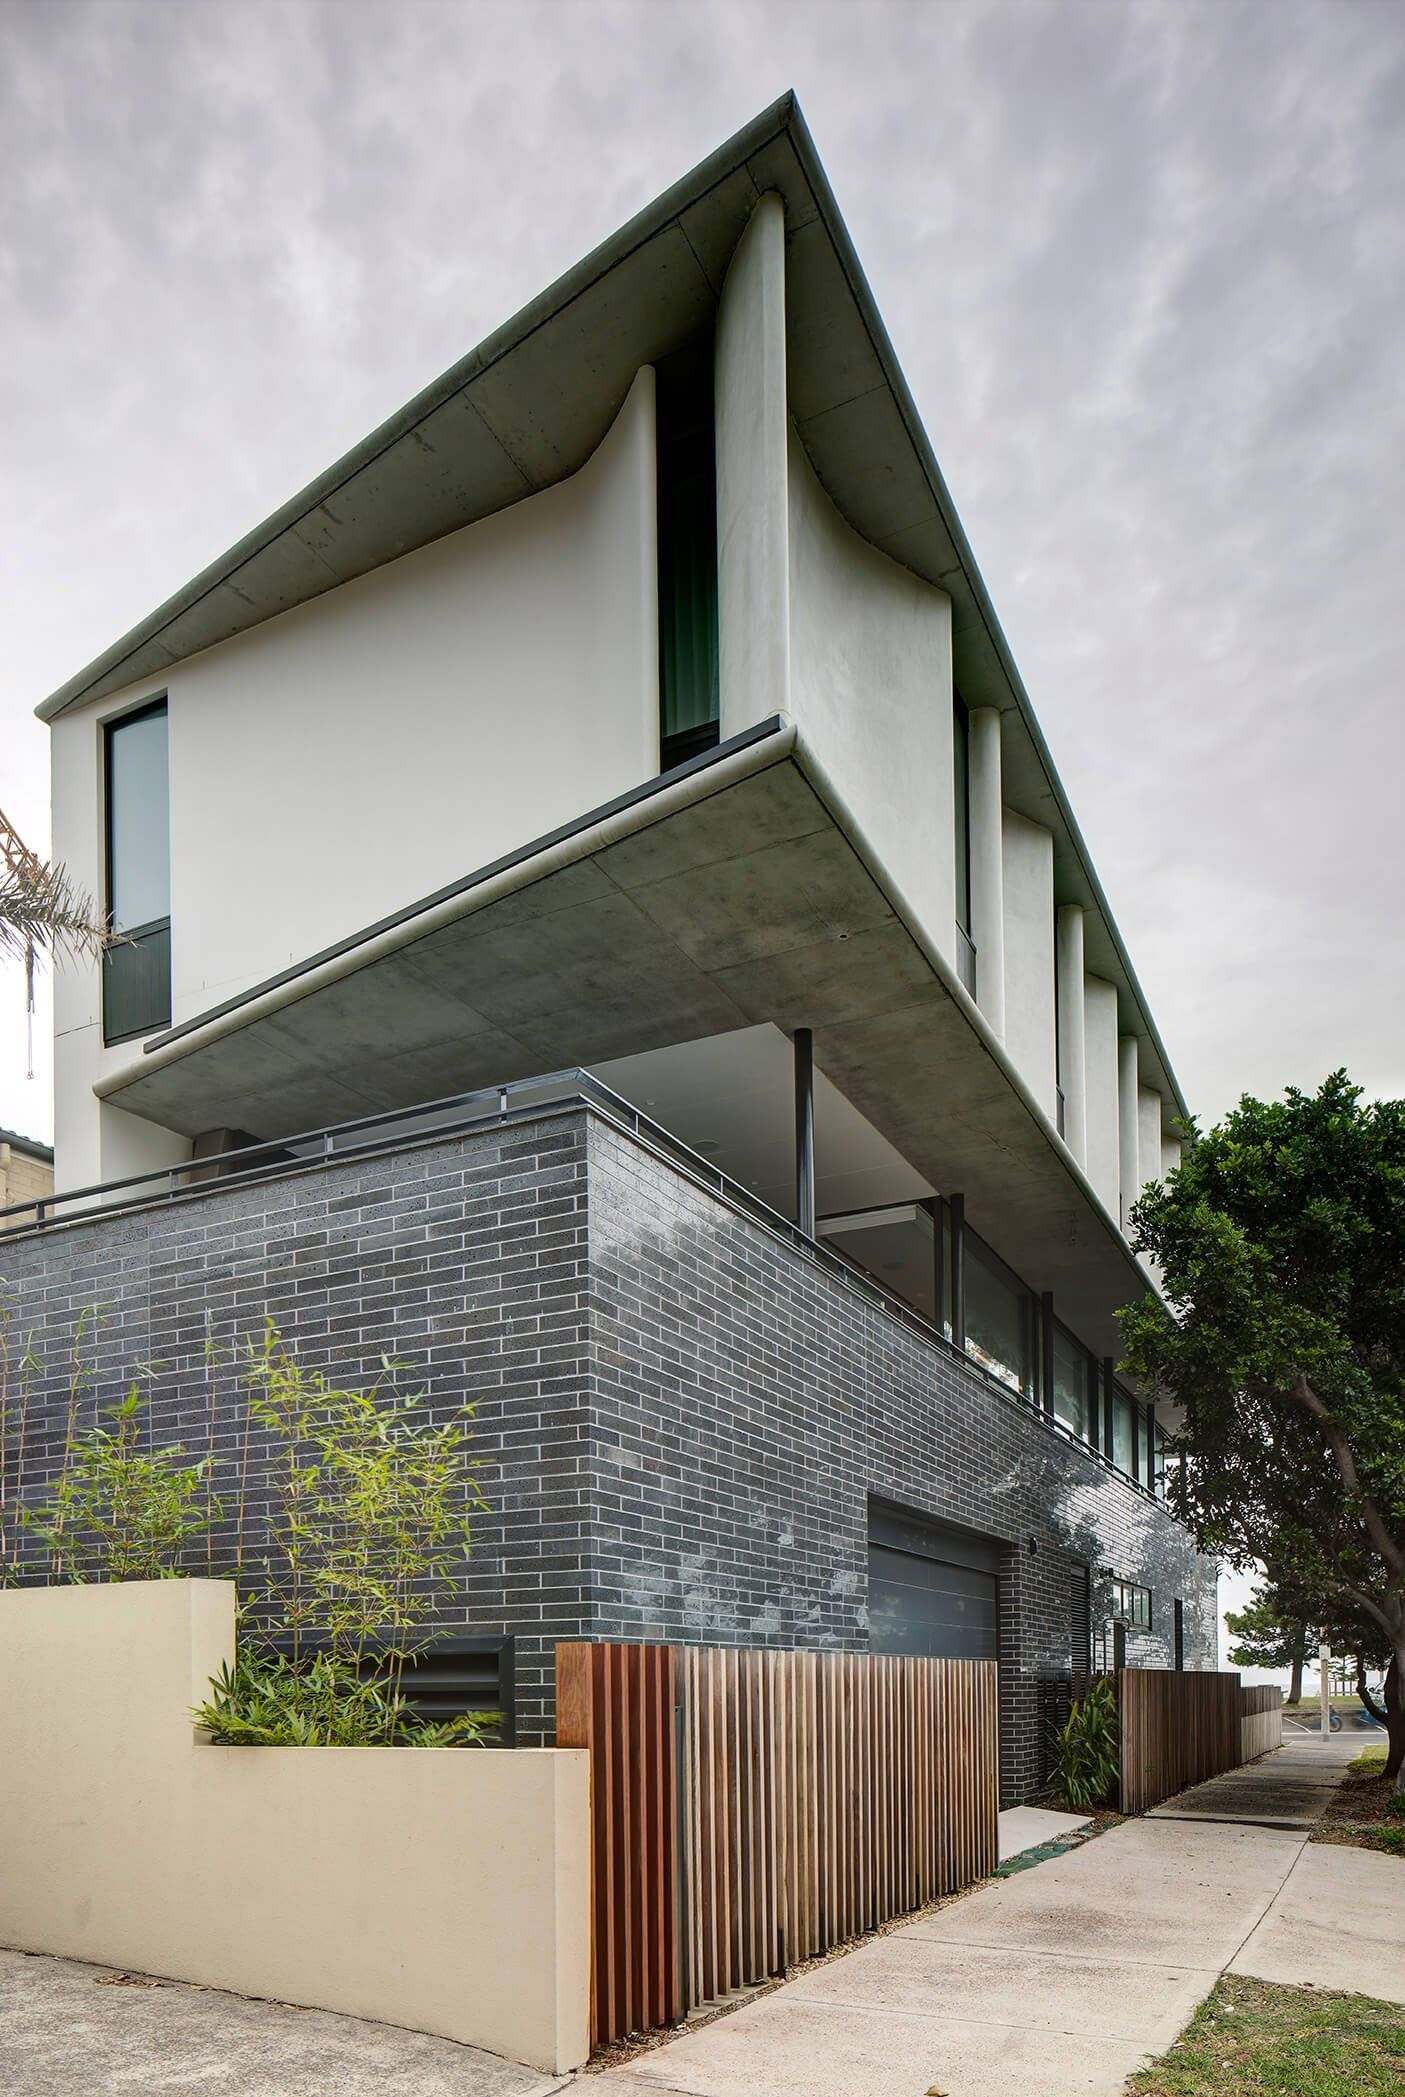 The Manly II Residence Is Located Just Metres From The Iconic Manly Beach  In Sydney. Sydney Builder Horizon Worked With Architects PopovBass To Build  This ... Amazing Design